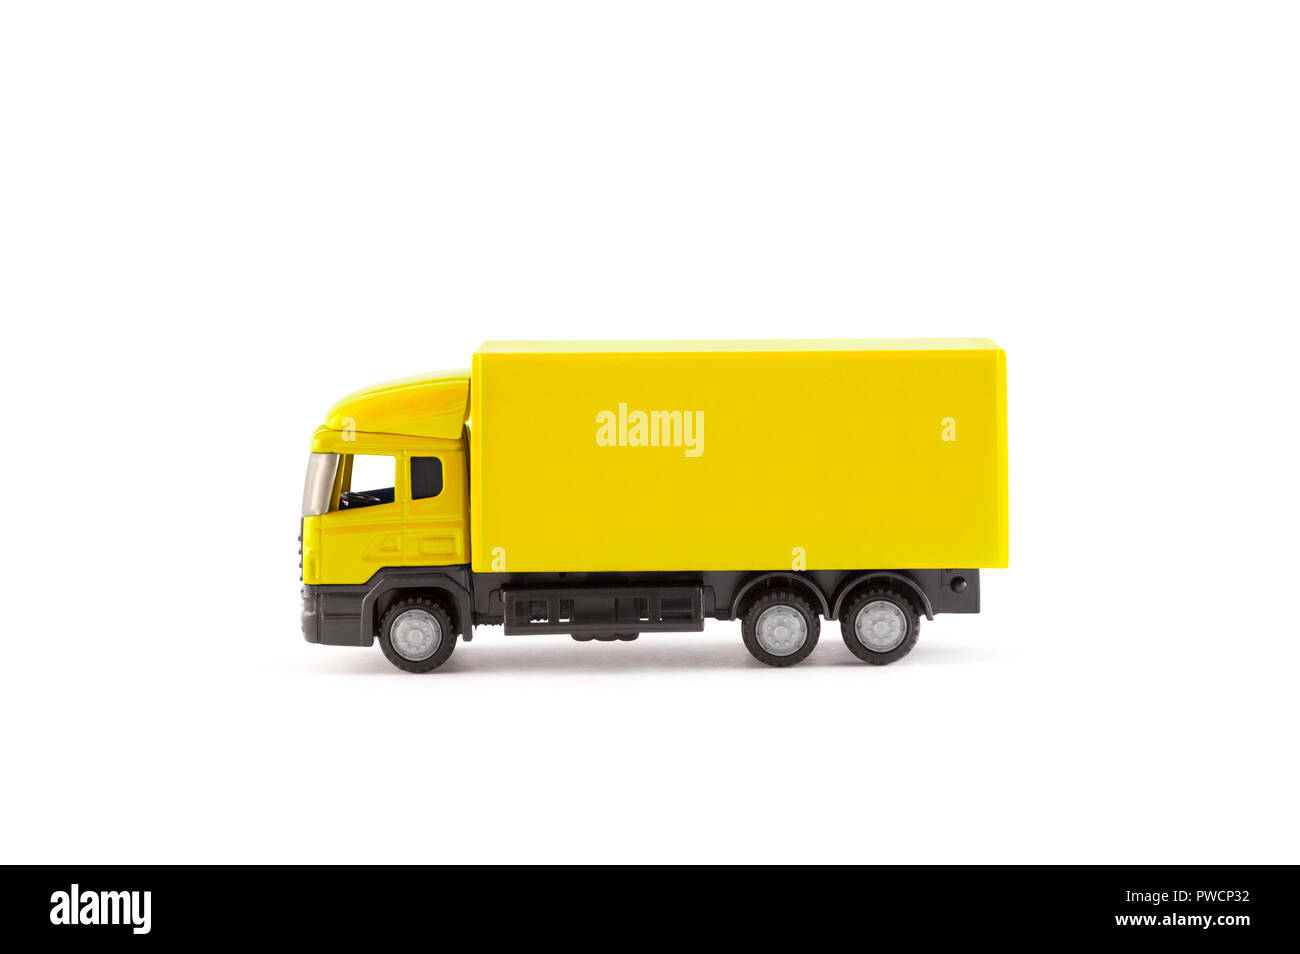 Yellow truck miniature on white background - Stock Image